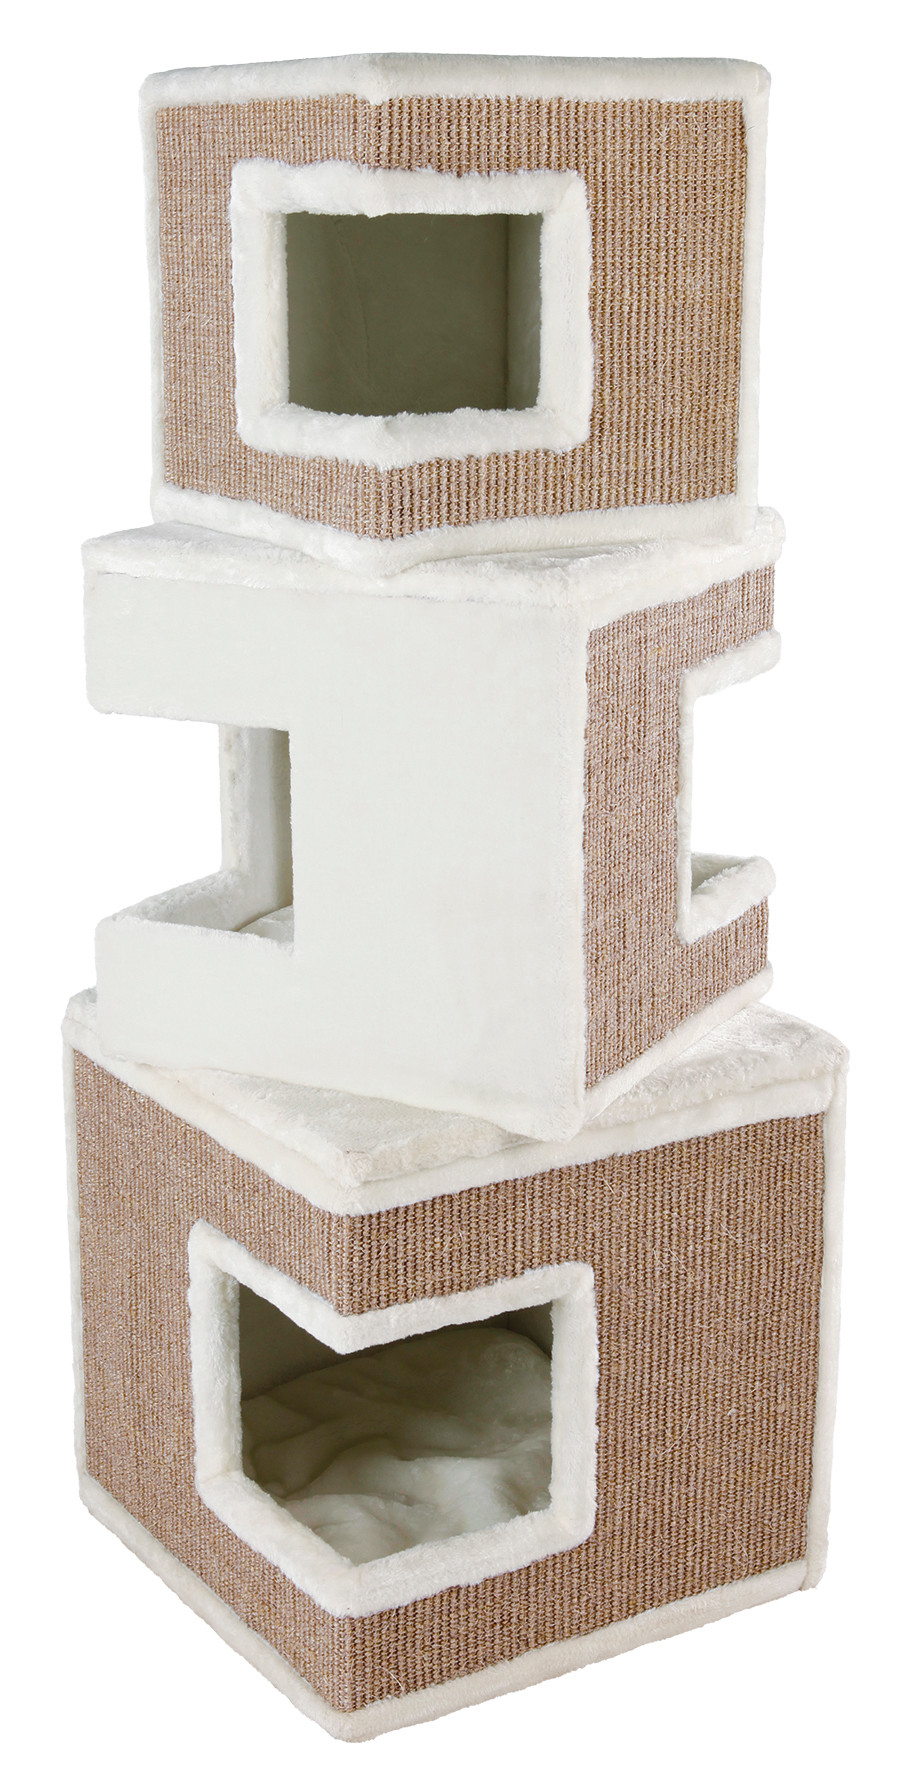 TRIXIE Cat Tower Lilo wit/bruin 123 cm